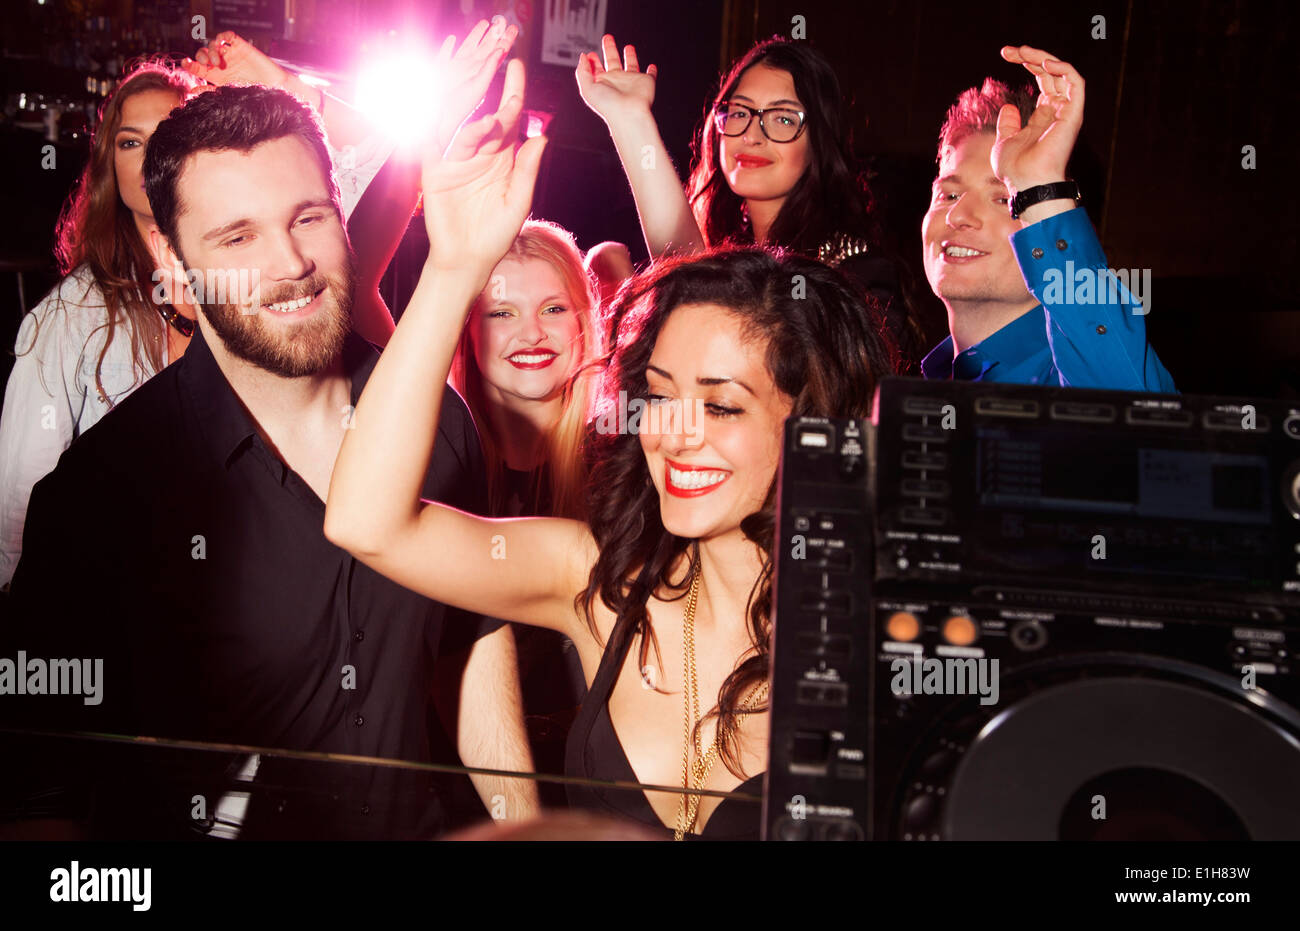 Group of young men and women dancing in nightclub - Stock Image